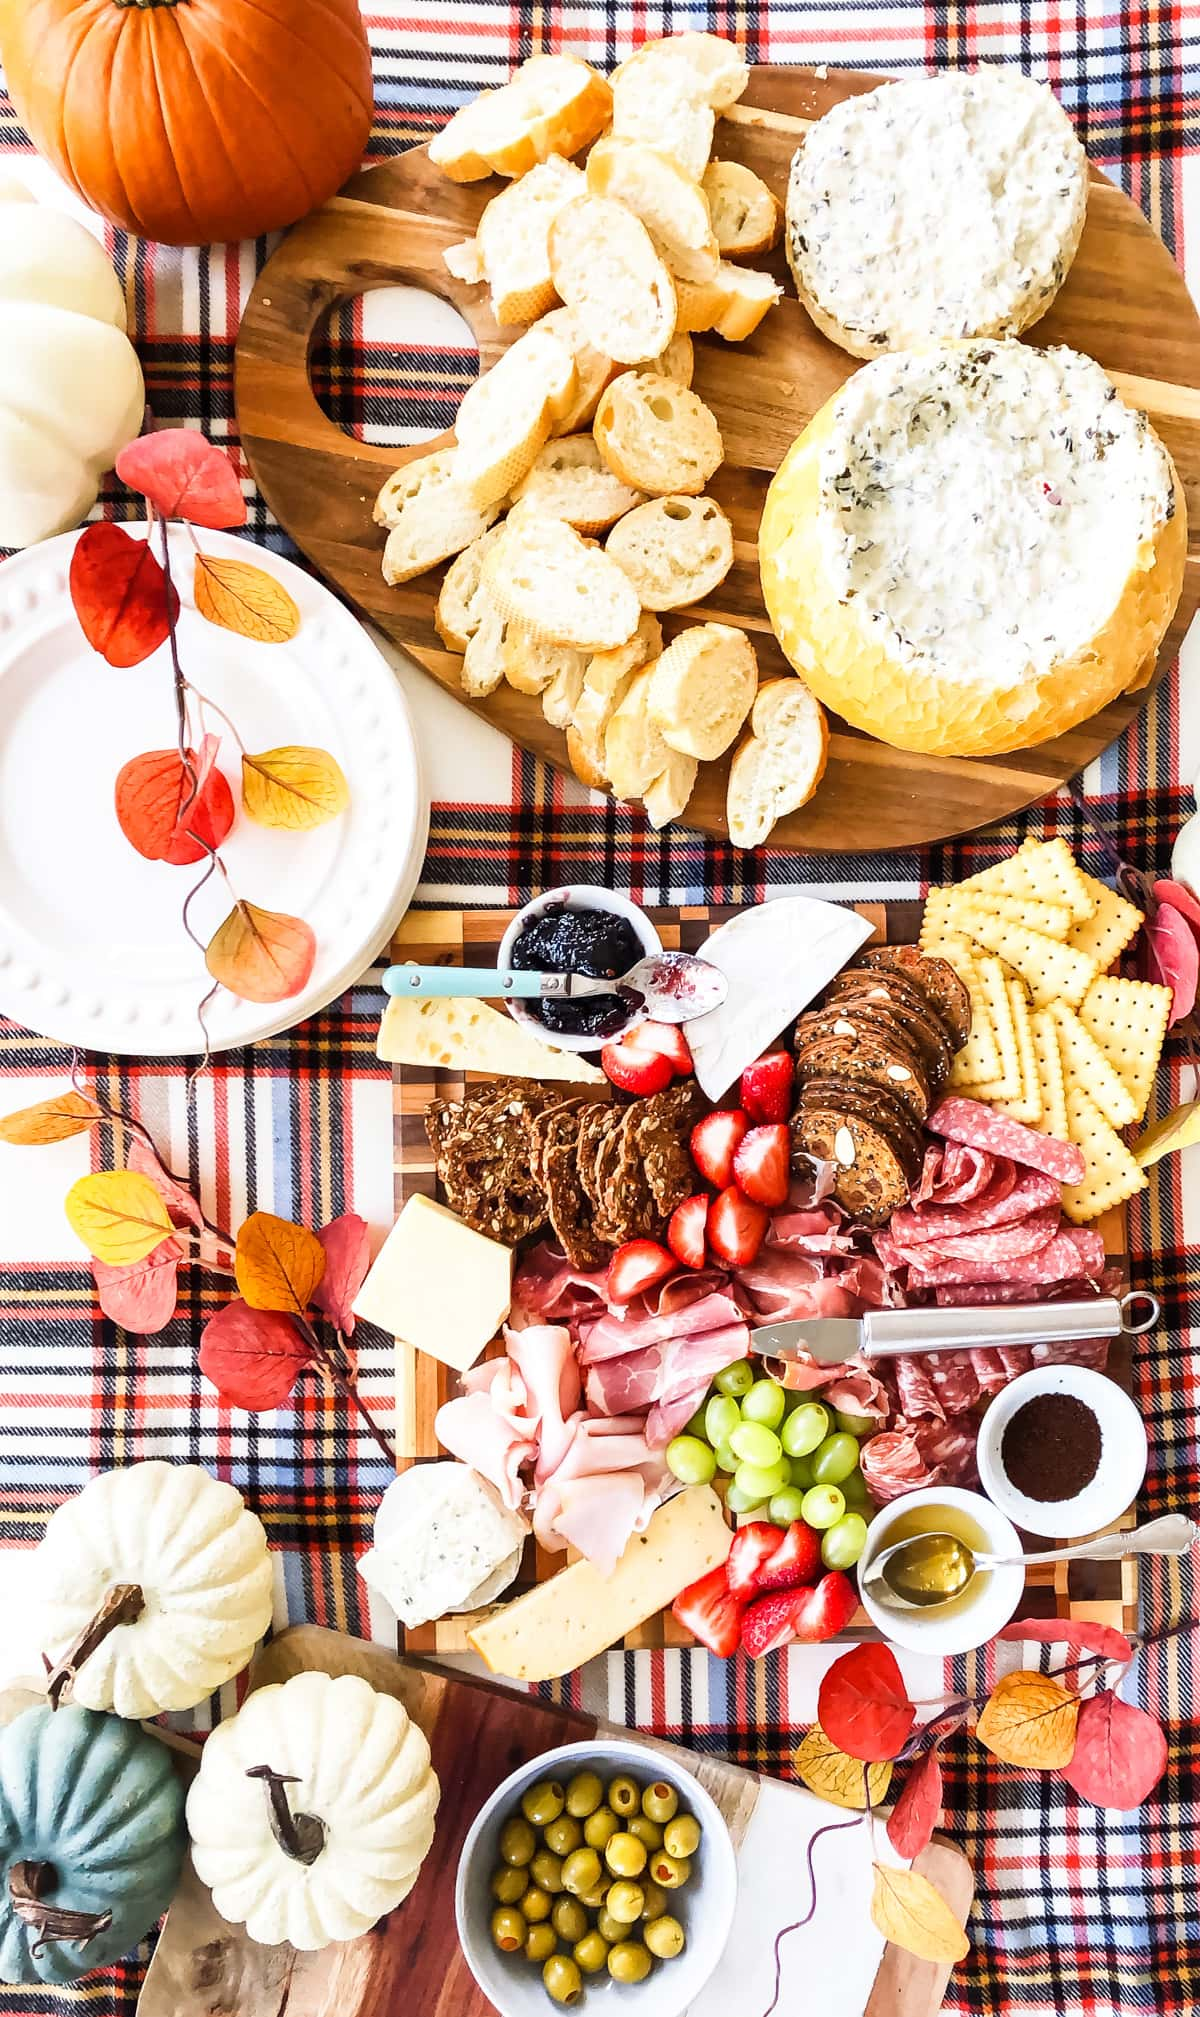 A top down view of a table full of delicious charcuterie, appetizers, dips and fruit